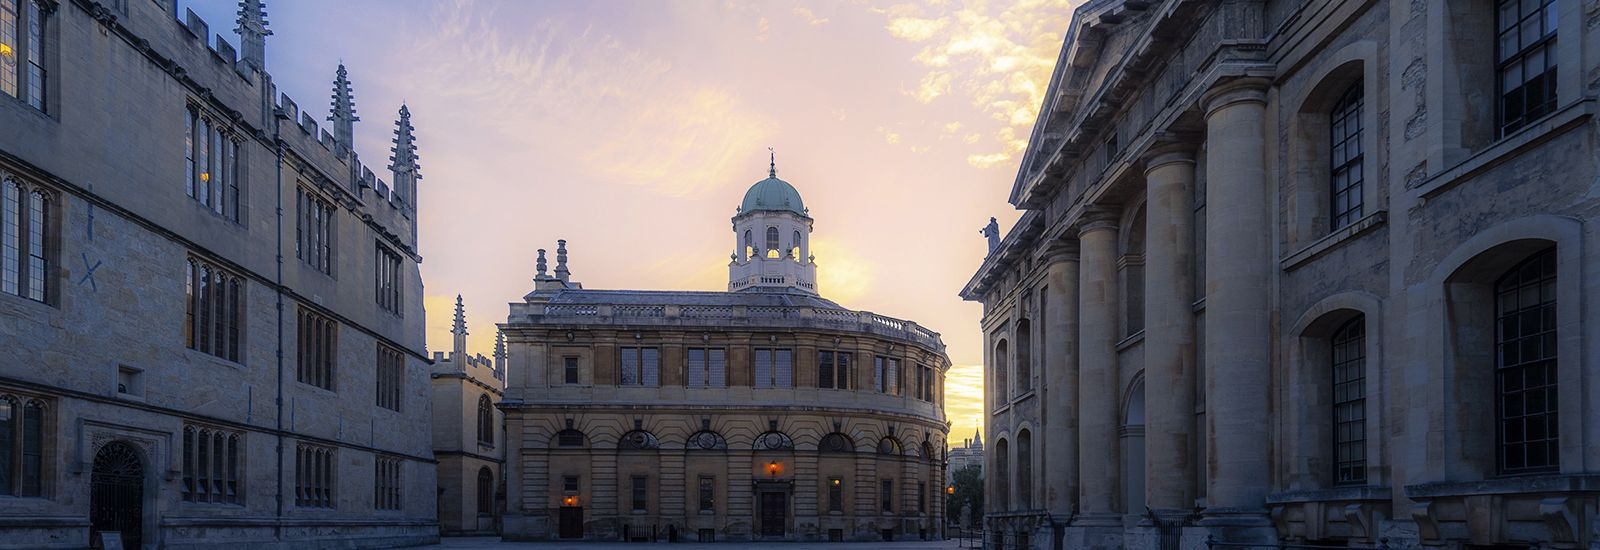 A photo of the Bodleian Library and the Sheldonian Theatre at sunset